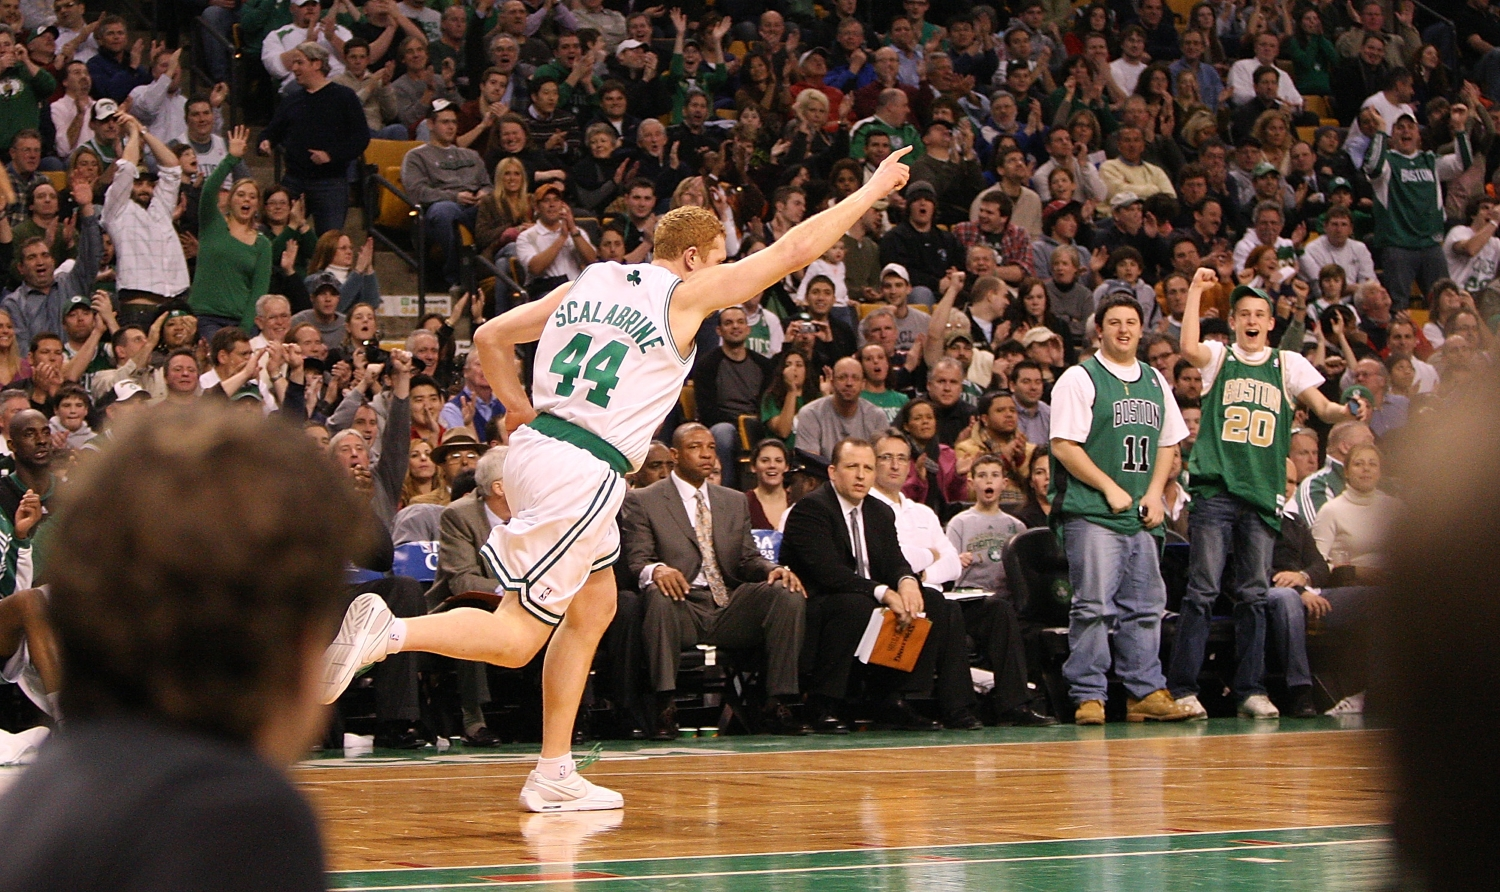 Brian Scalabrine celebrates as he runs down the court as a member of the Boston Celtics.